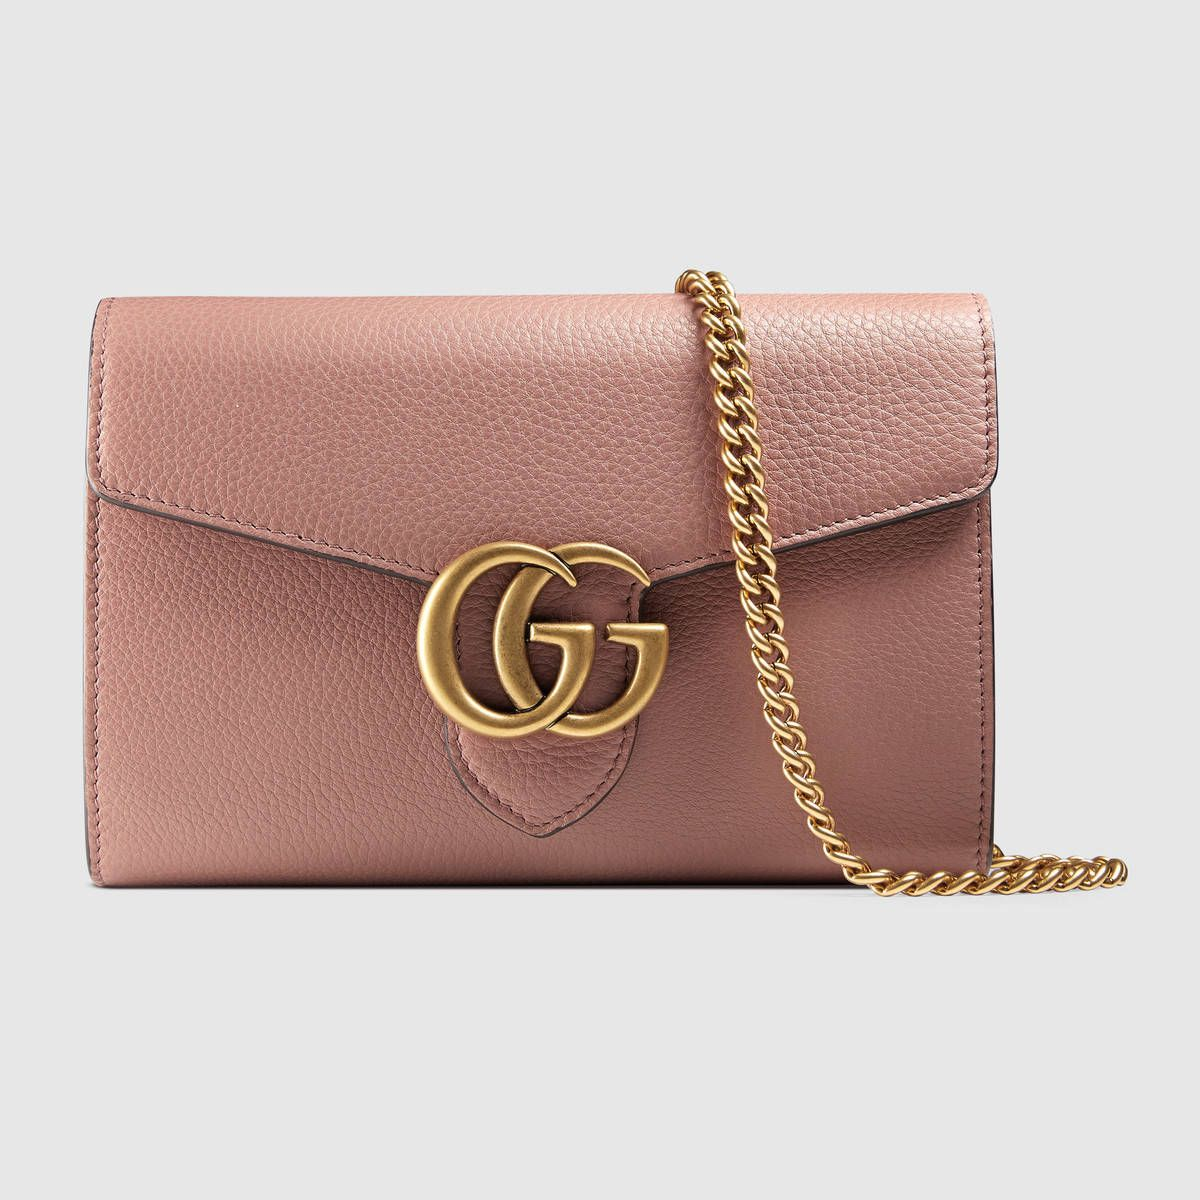 Gg Marmont Leather Mini Chain Bag Mens Leather Bag Mini Chain Bag Brown Leather Purses